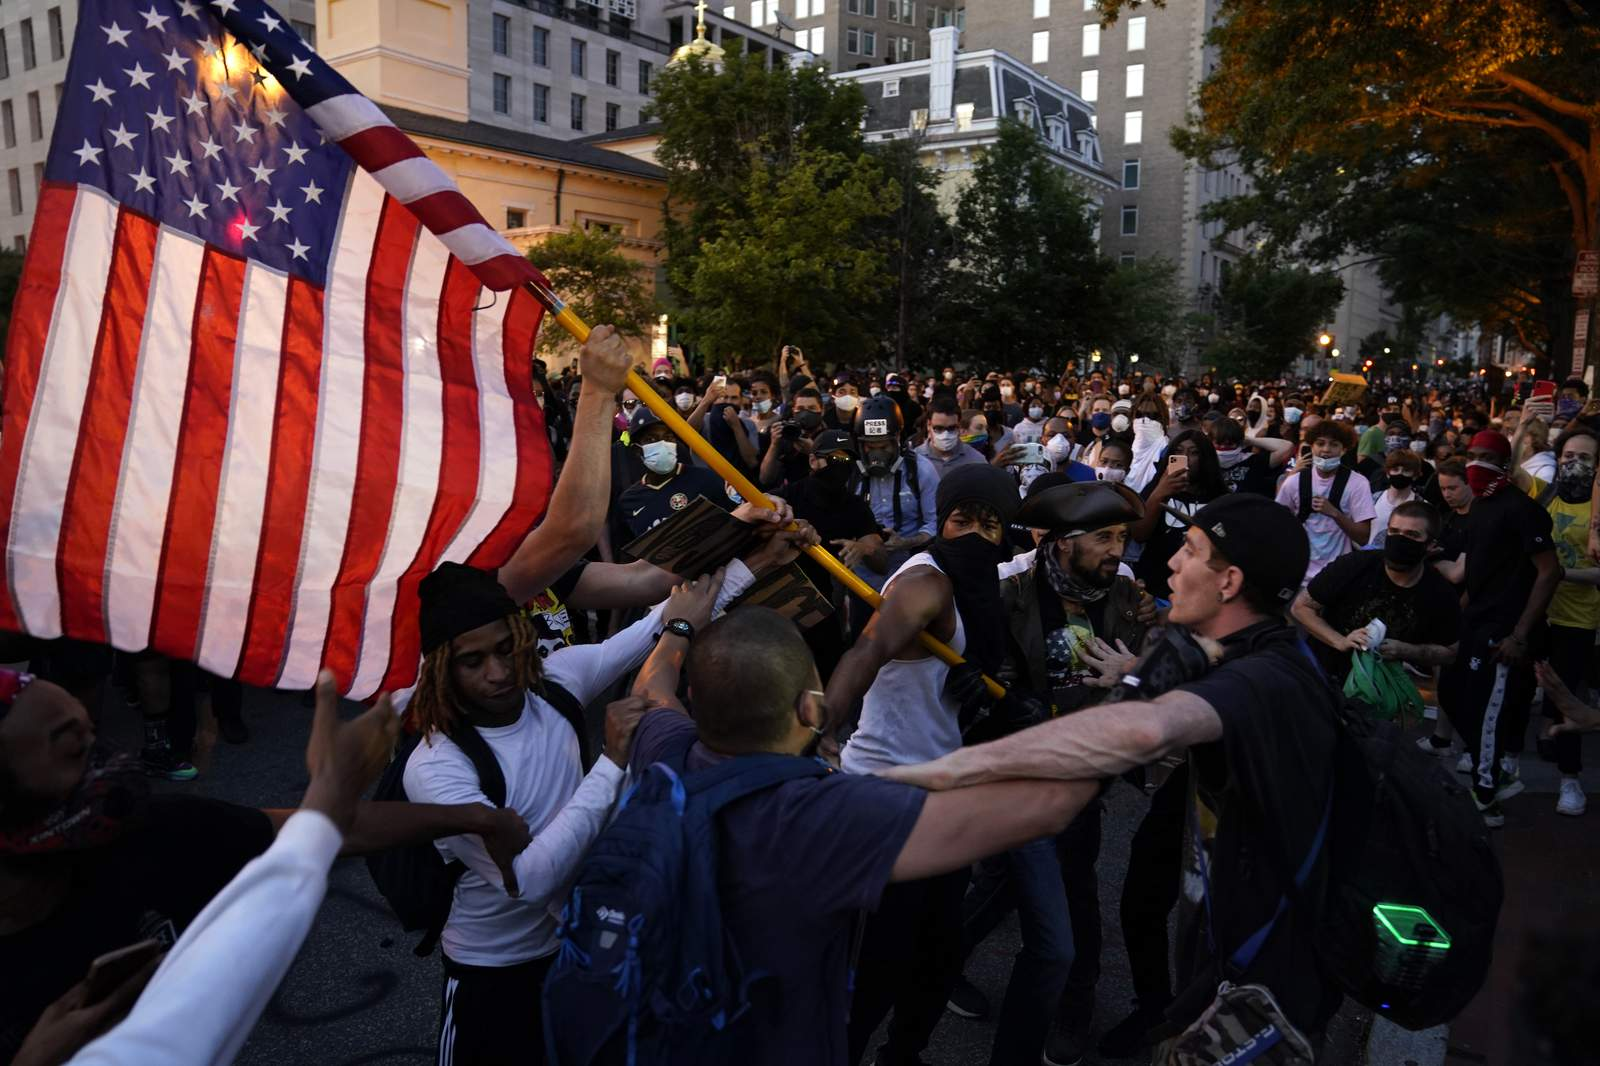 VIDEOS: Civil unrest, riots across the nation prompt curfews in ...